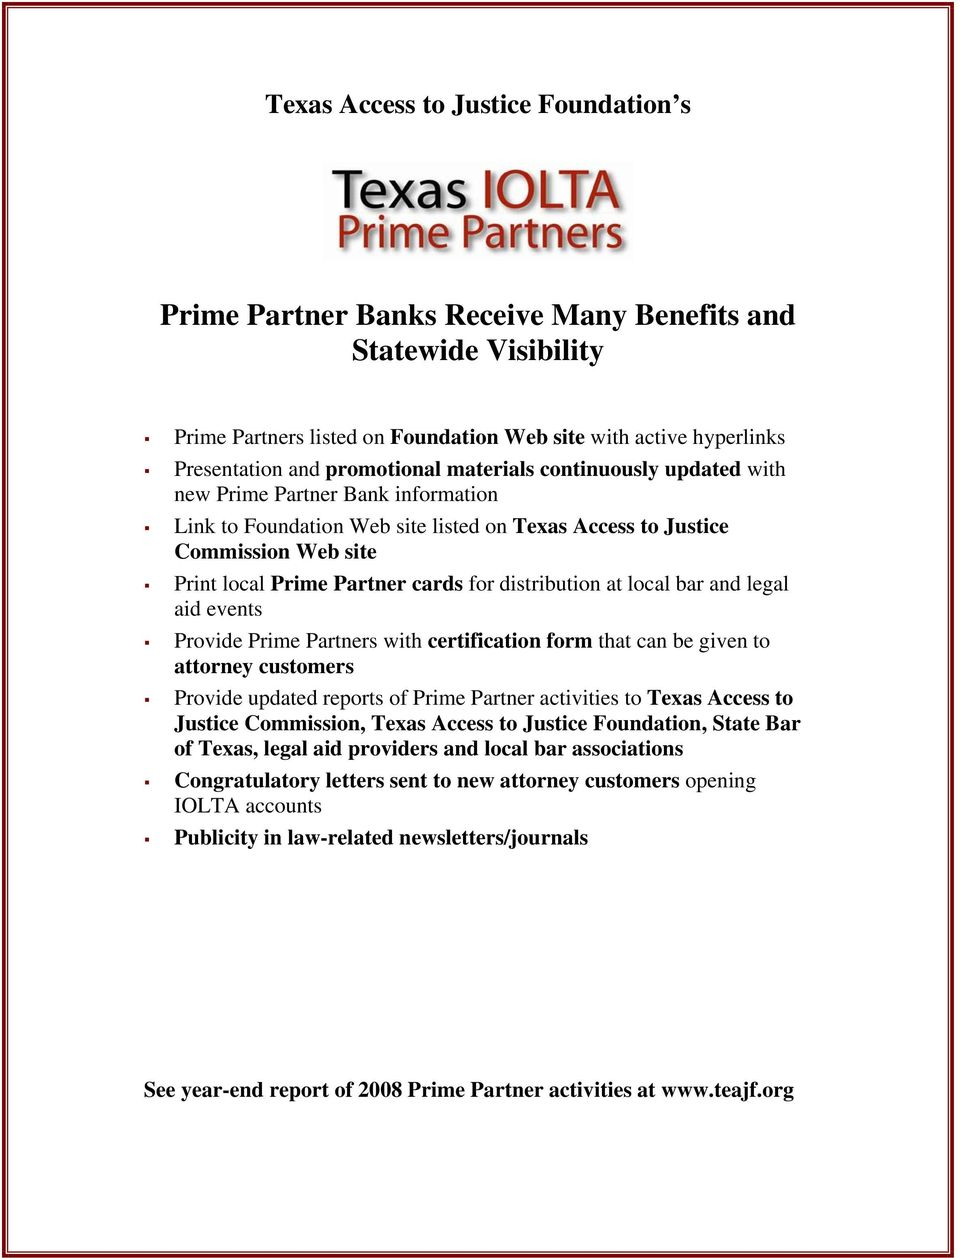 for distribution at local bar and legal aid events Provide Prime Partners with certification form that can be given to attorney customers Provide updated reports of Prime Partner activities to Texas